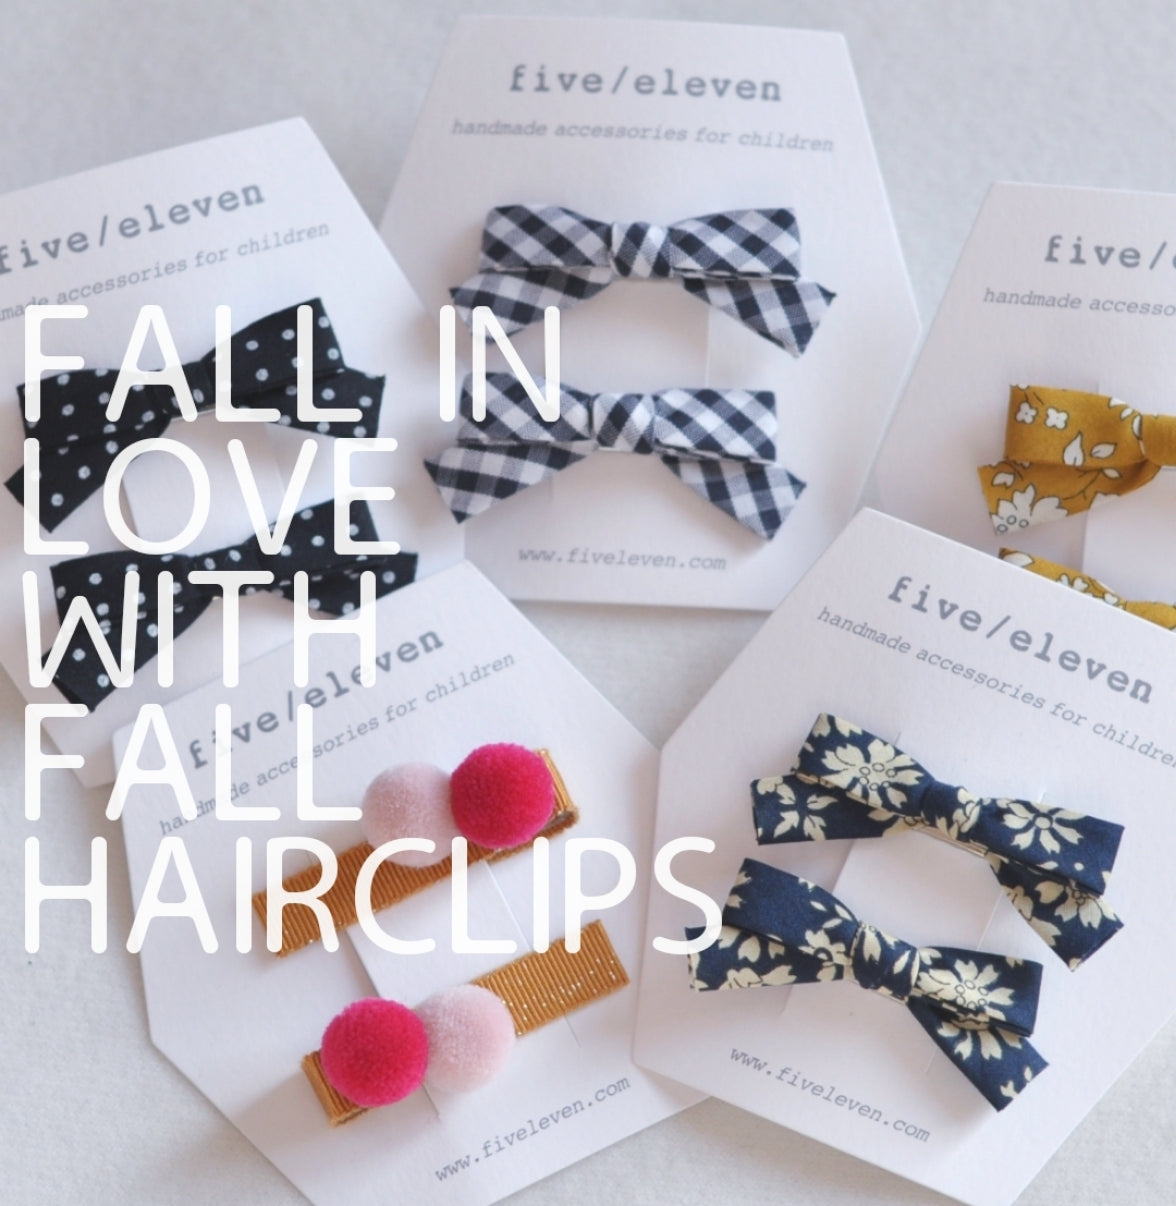 The fall hairclips